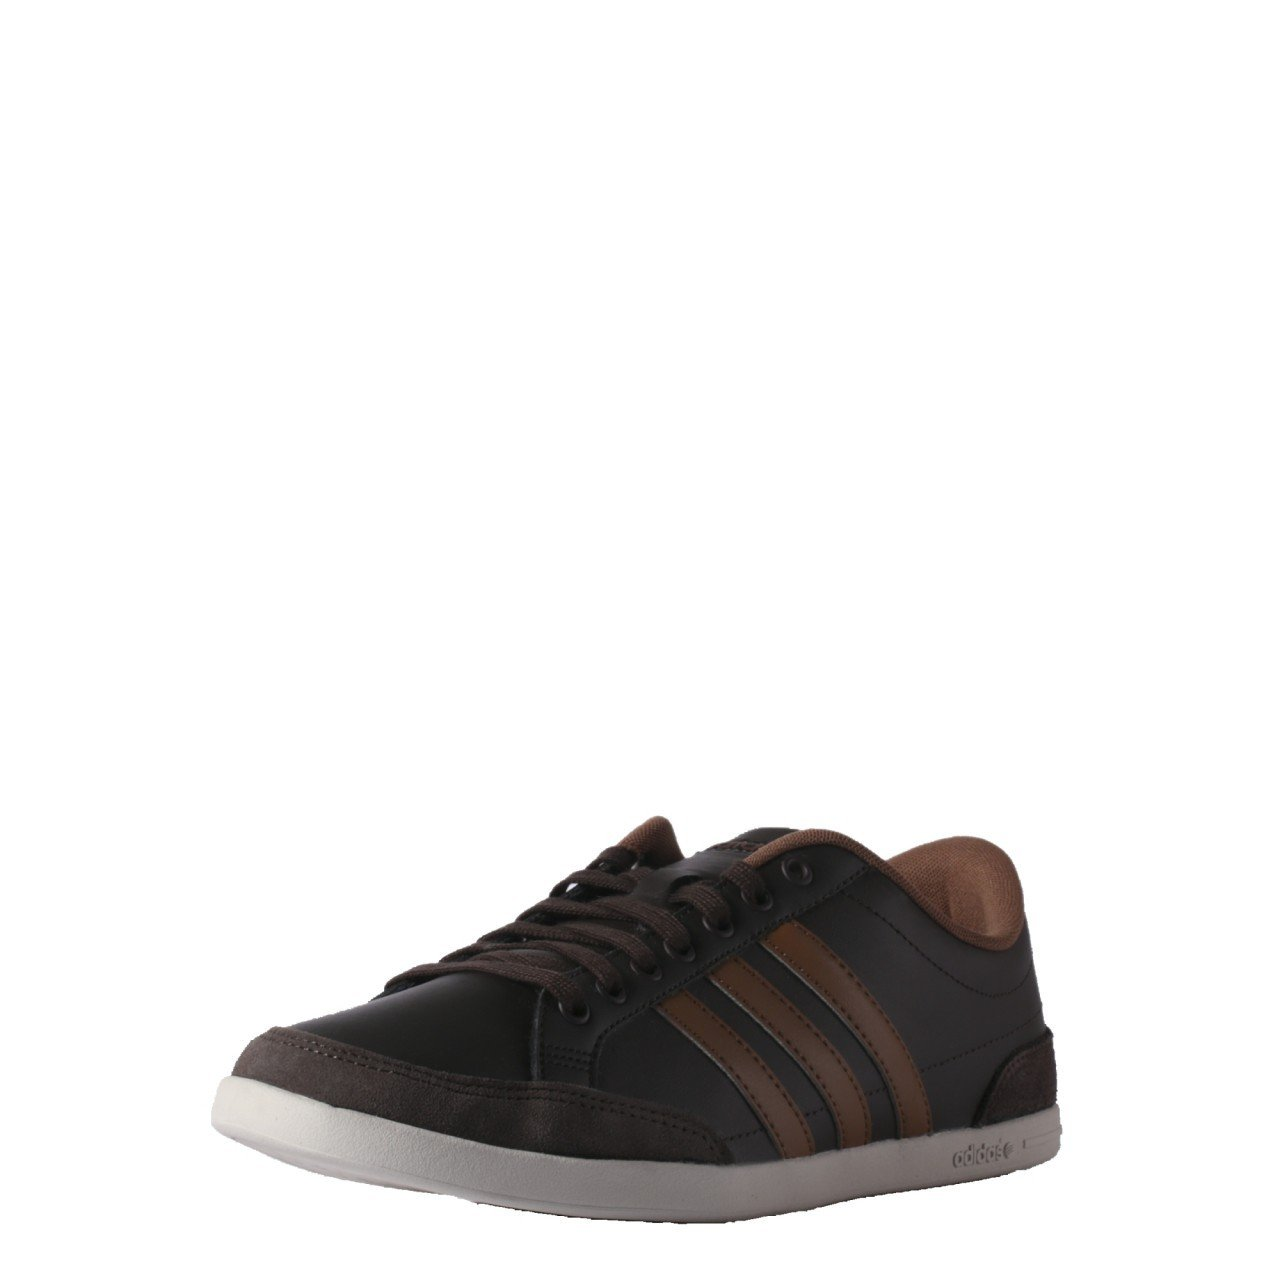 Buy Adidas NEO Men Brown Cacity Leather